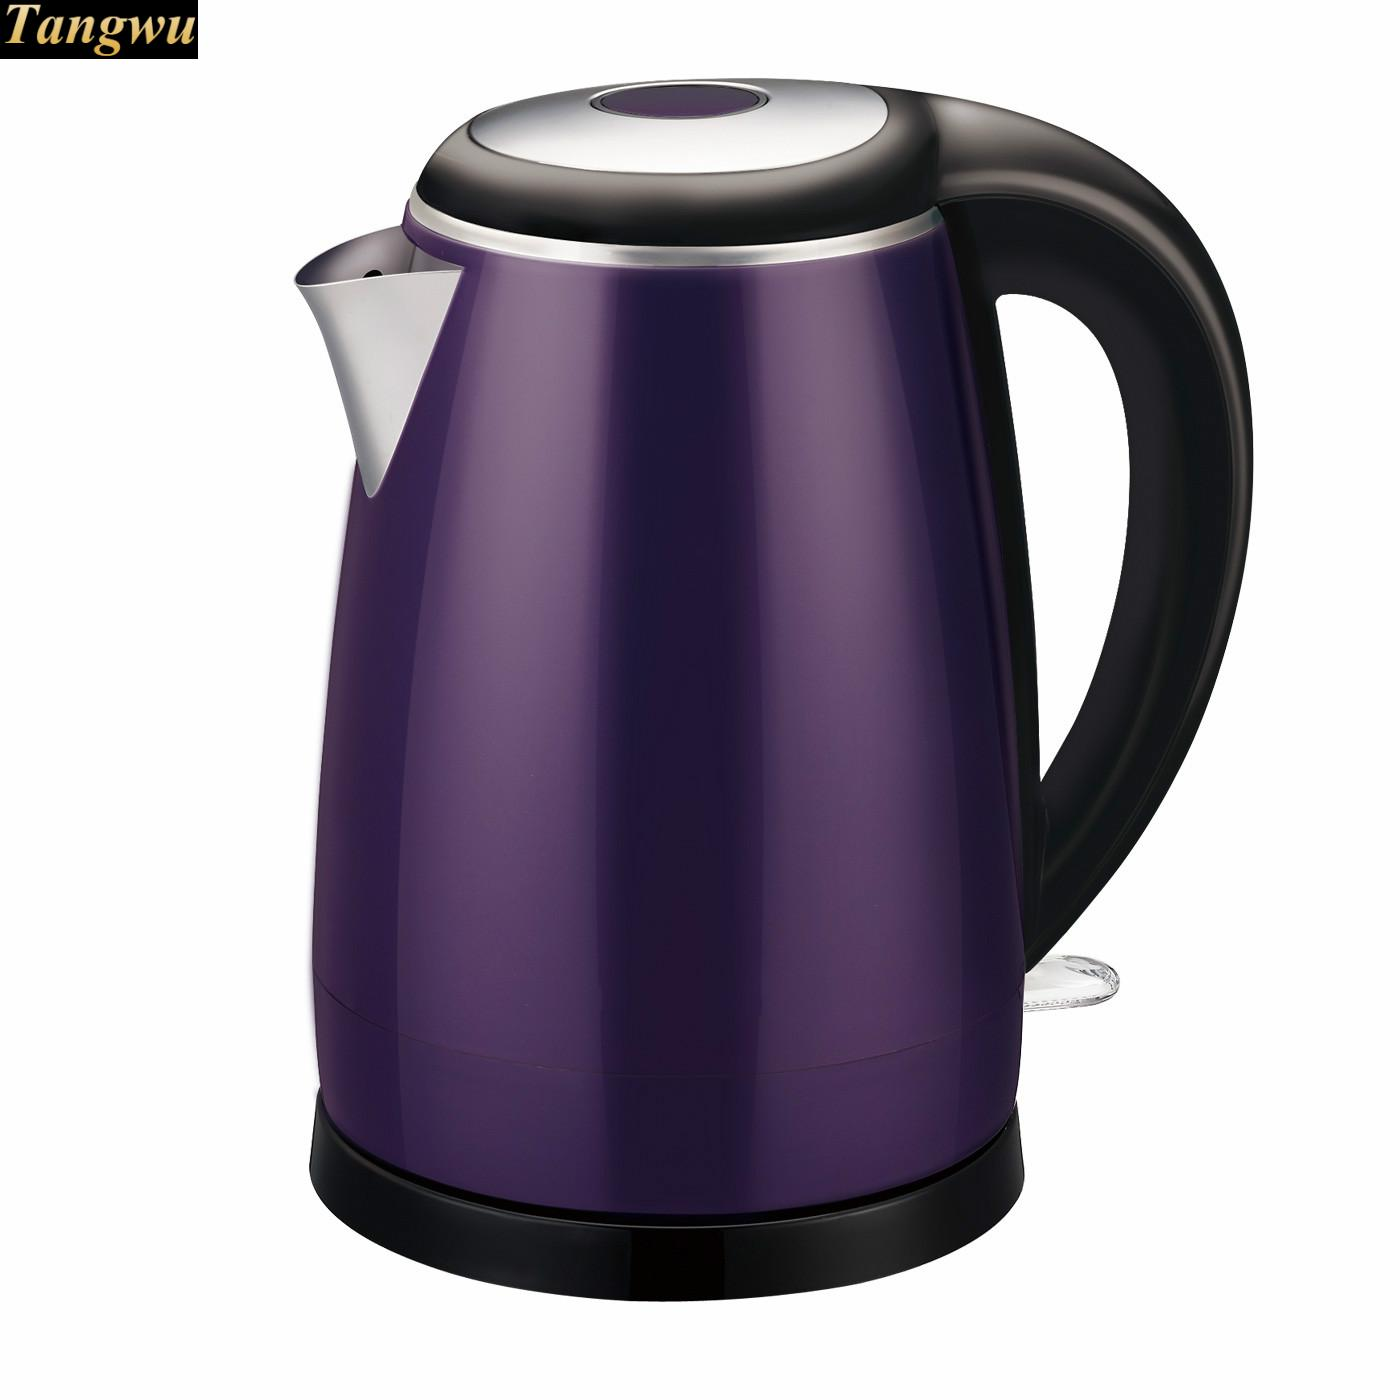 Household electric kettle 304 stainless steel automatic power cukyi household electric multi function cooker 220v stainless steel colorful stew cook steam machine 5 in 1